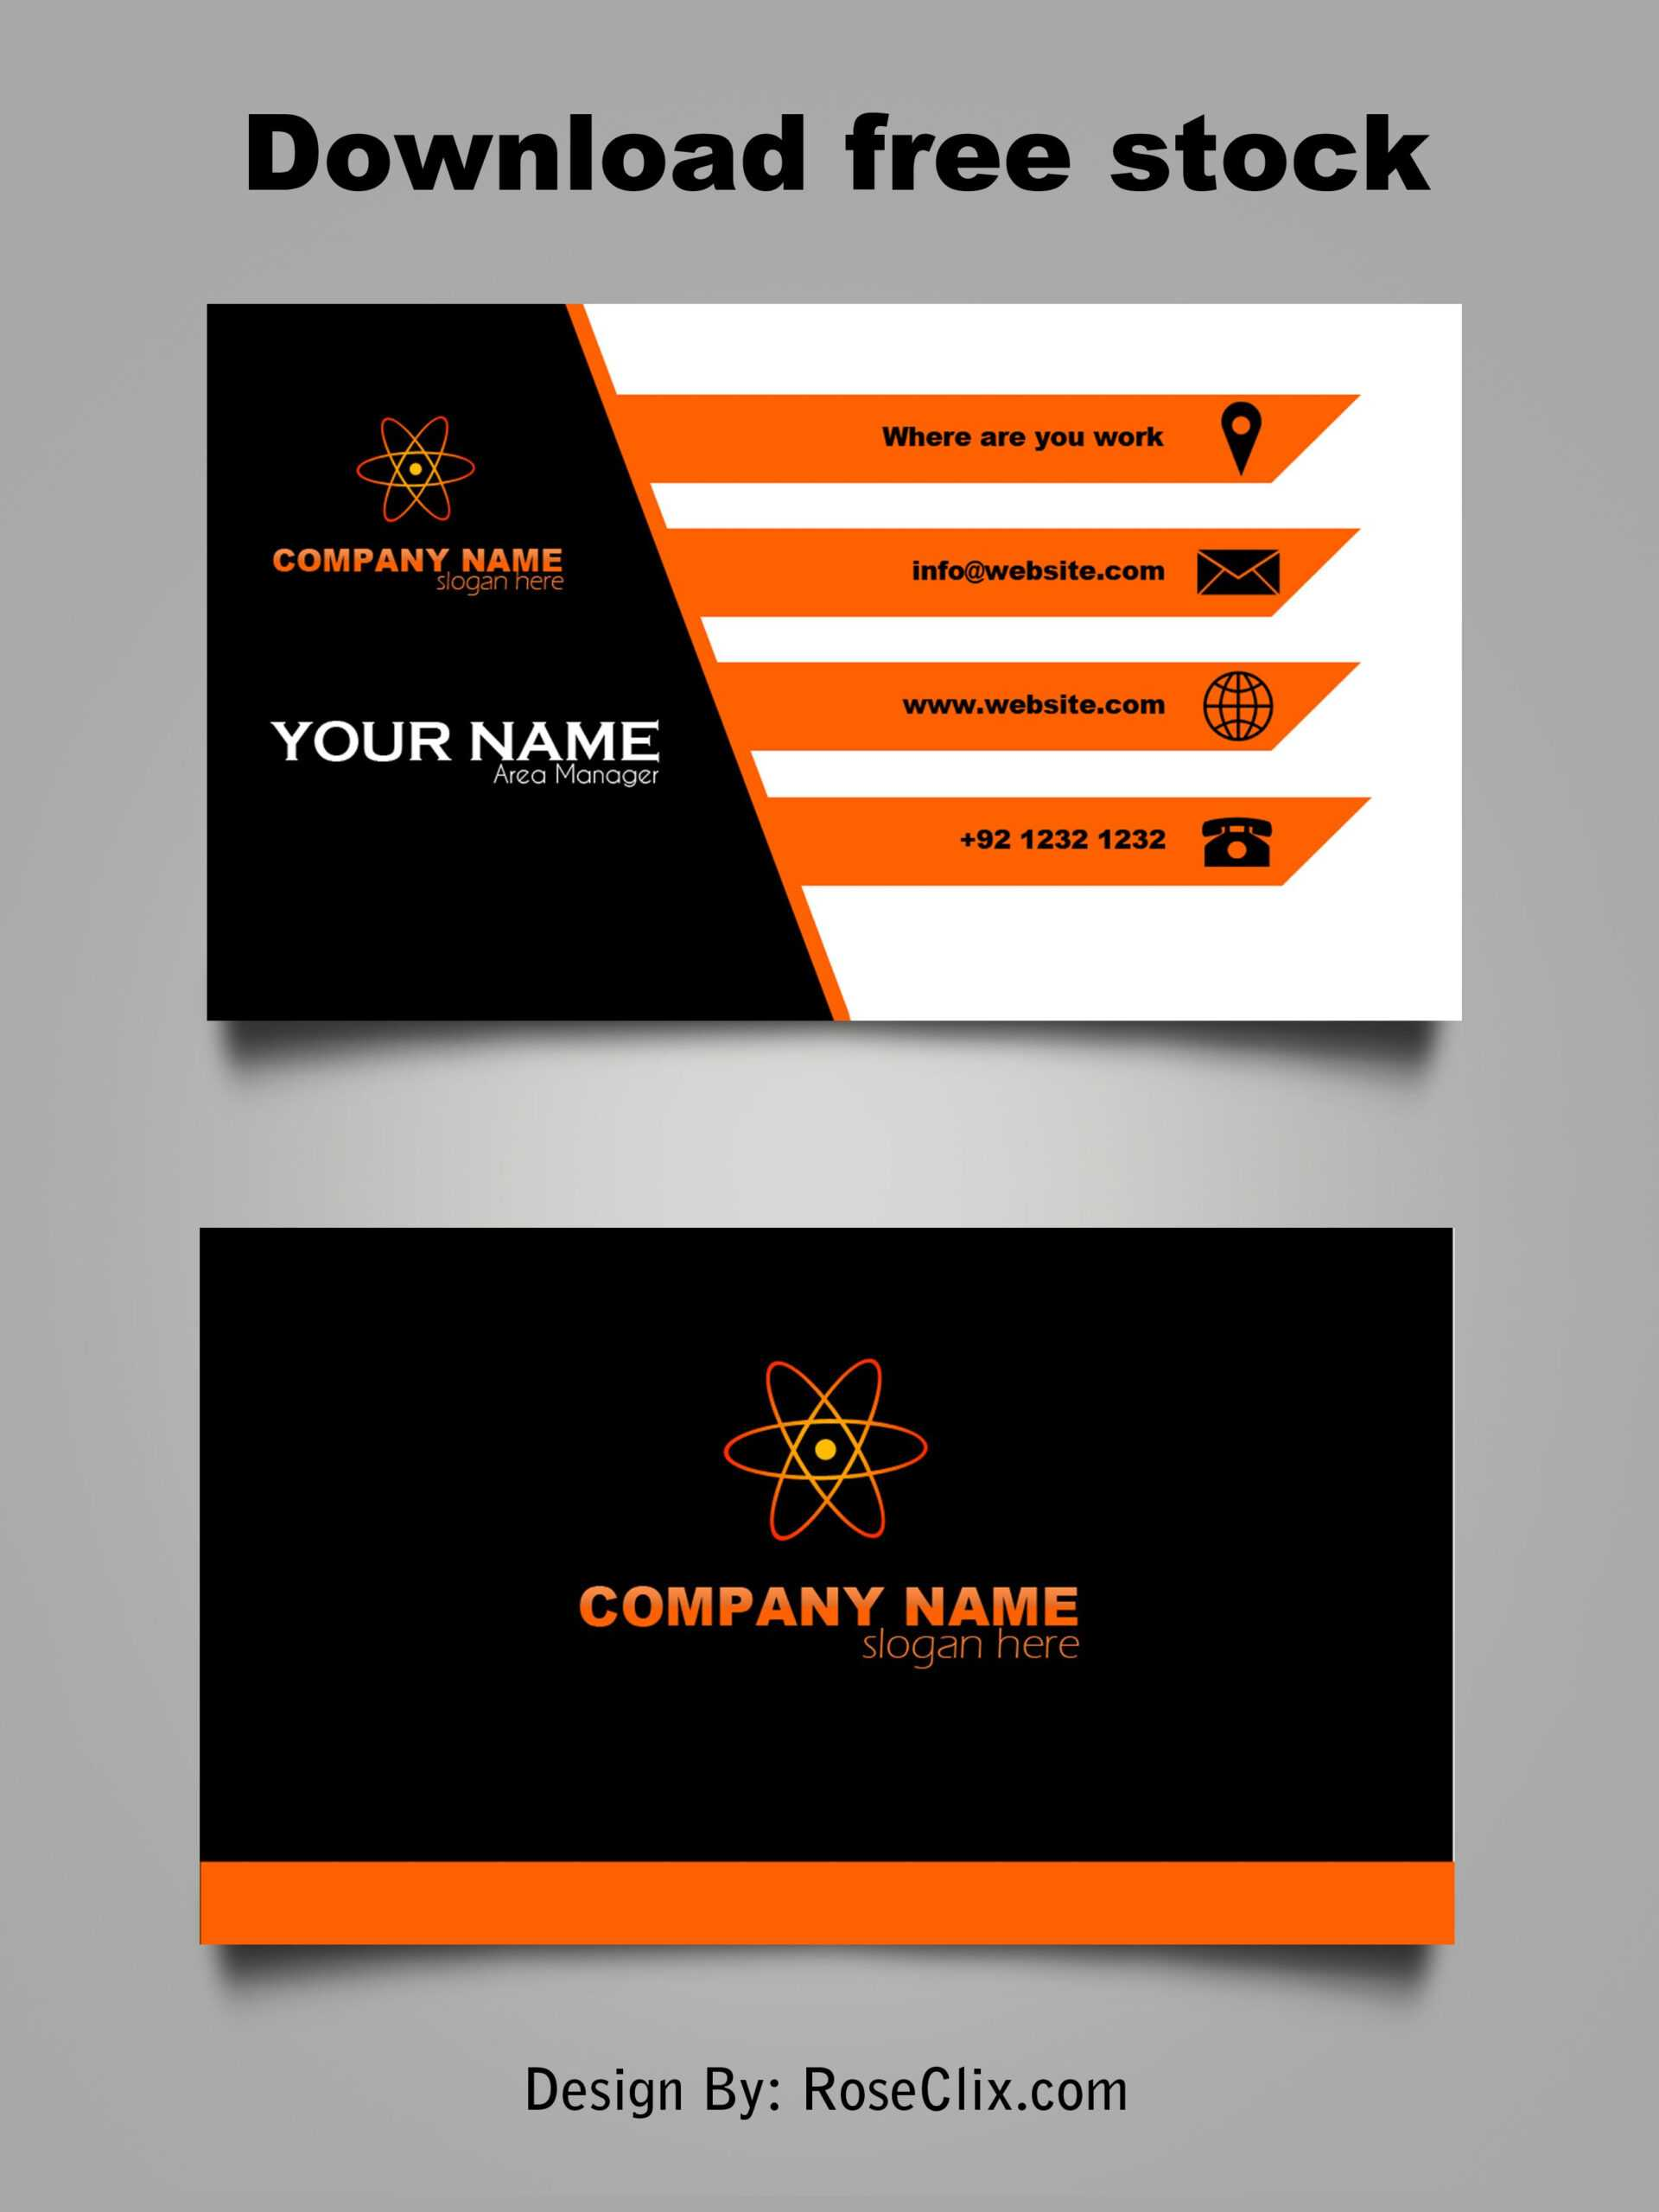 Business Card Template Free Downloads Psd Fils. In 2019 Regarding Templates For Visiting Cards Free Downloads